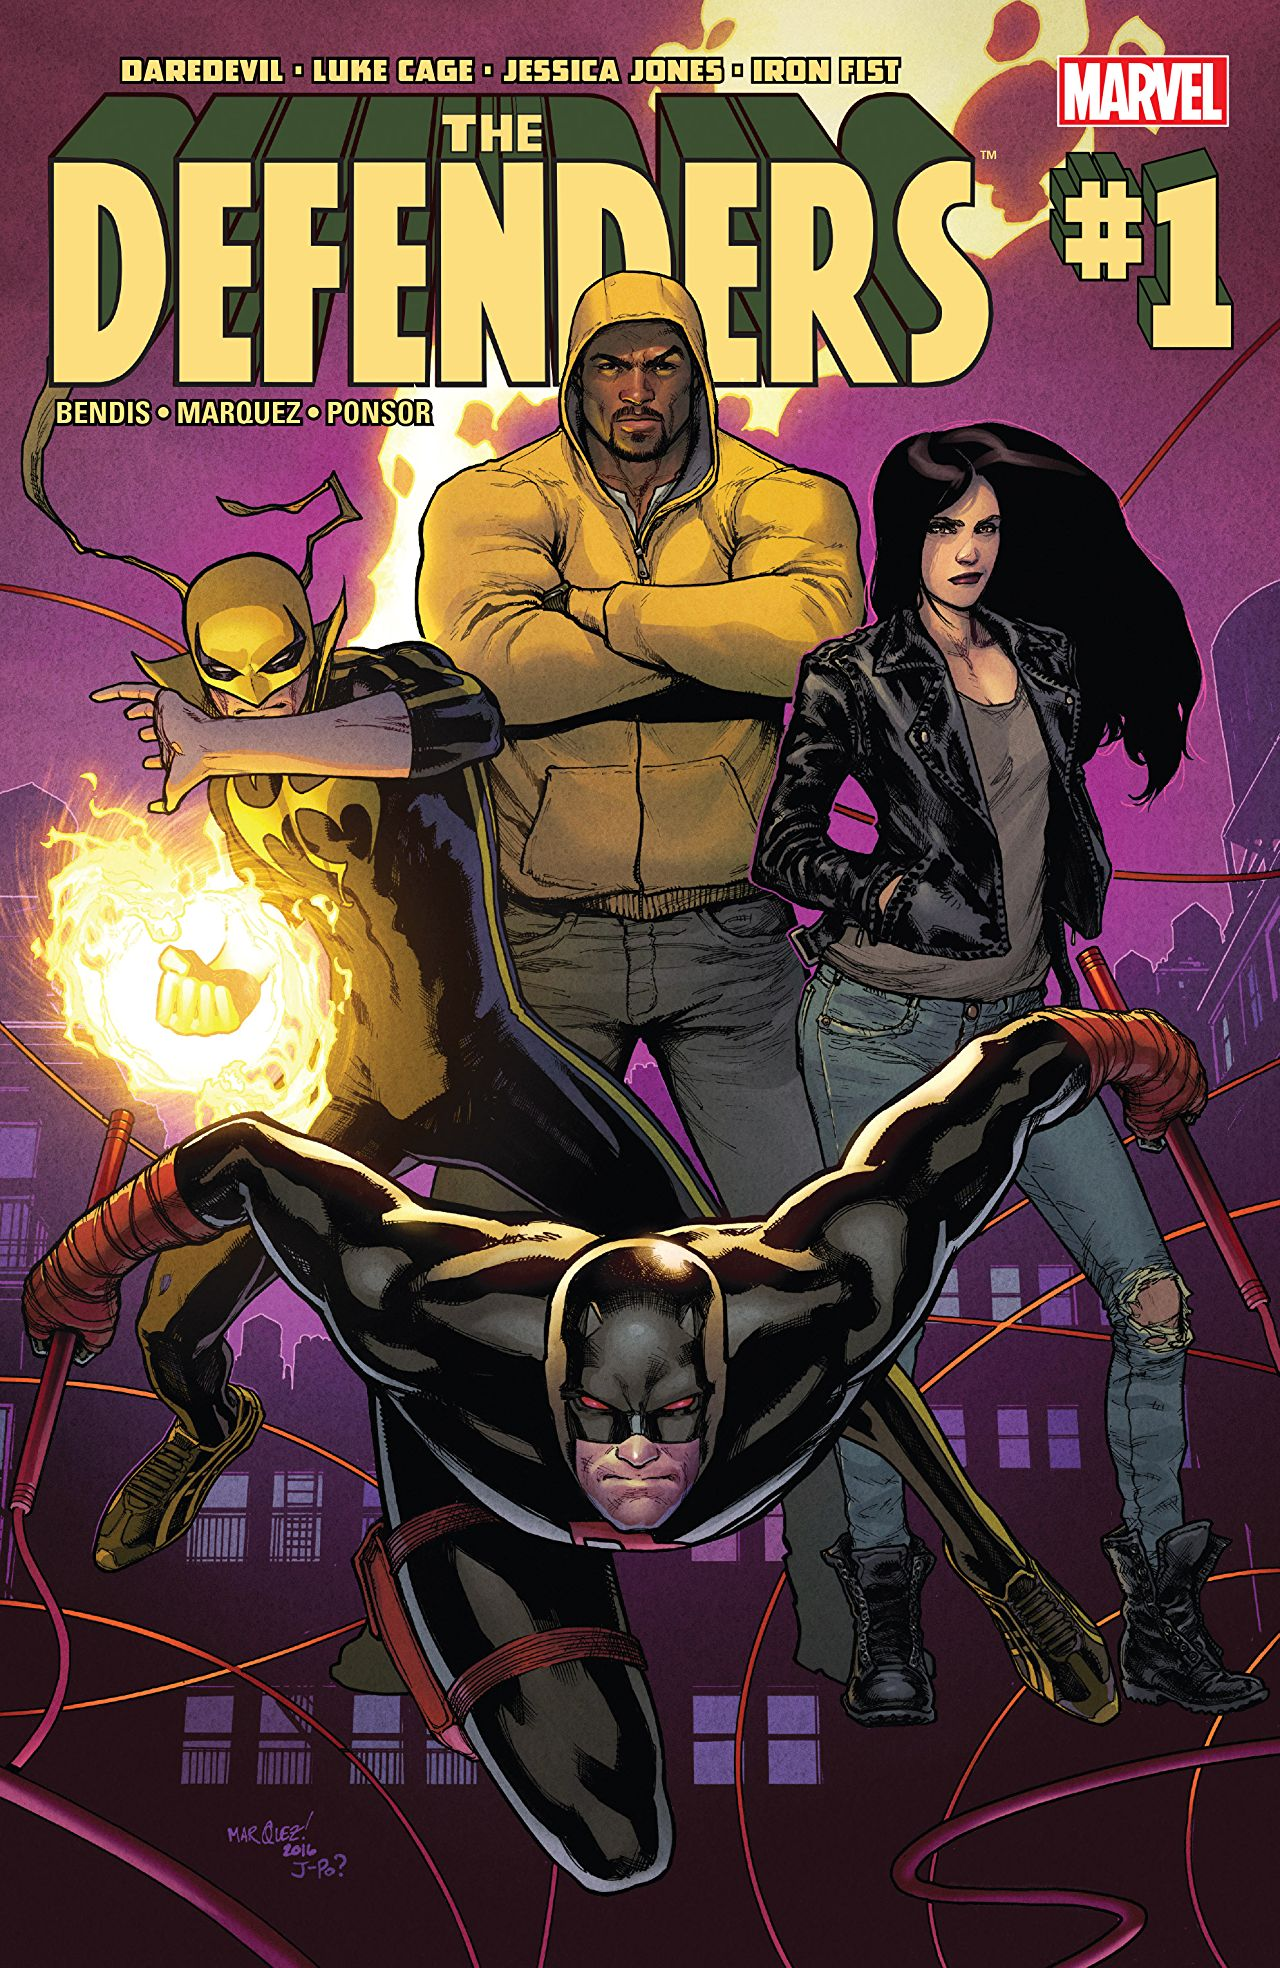 Keith's Recommended Reading: Marvel's The Defenders